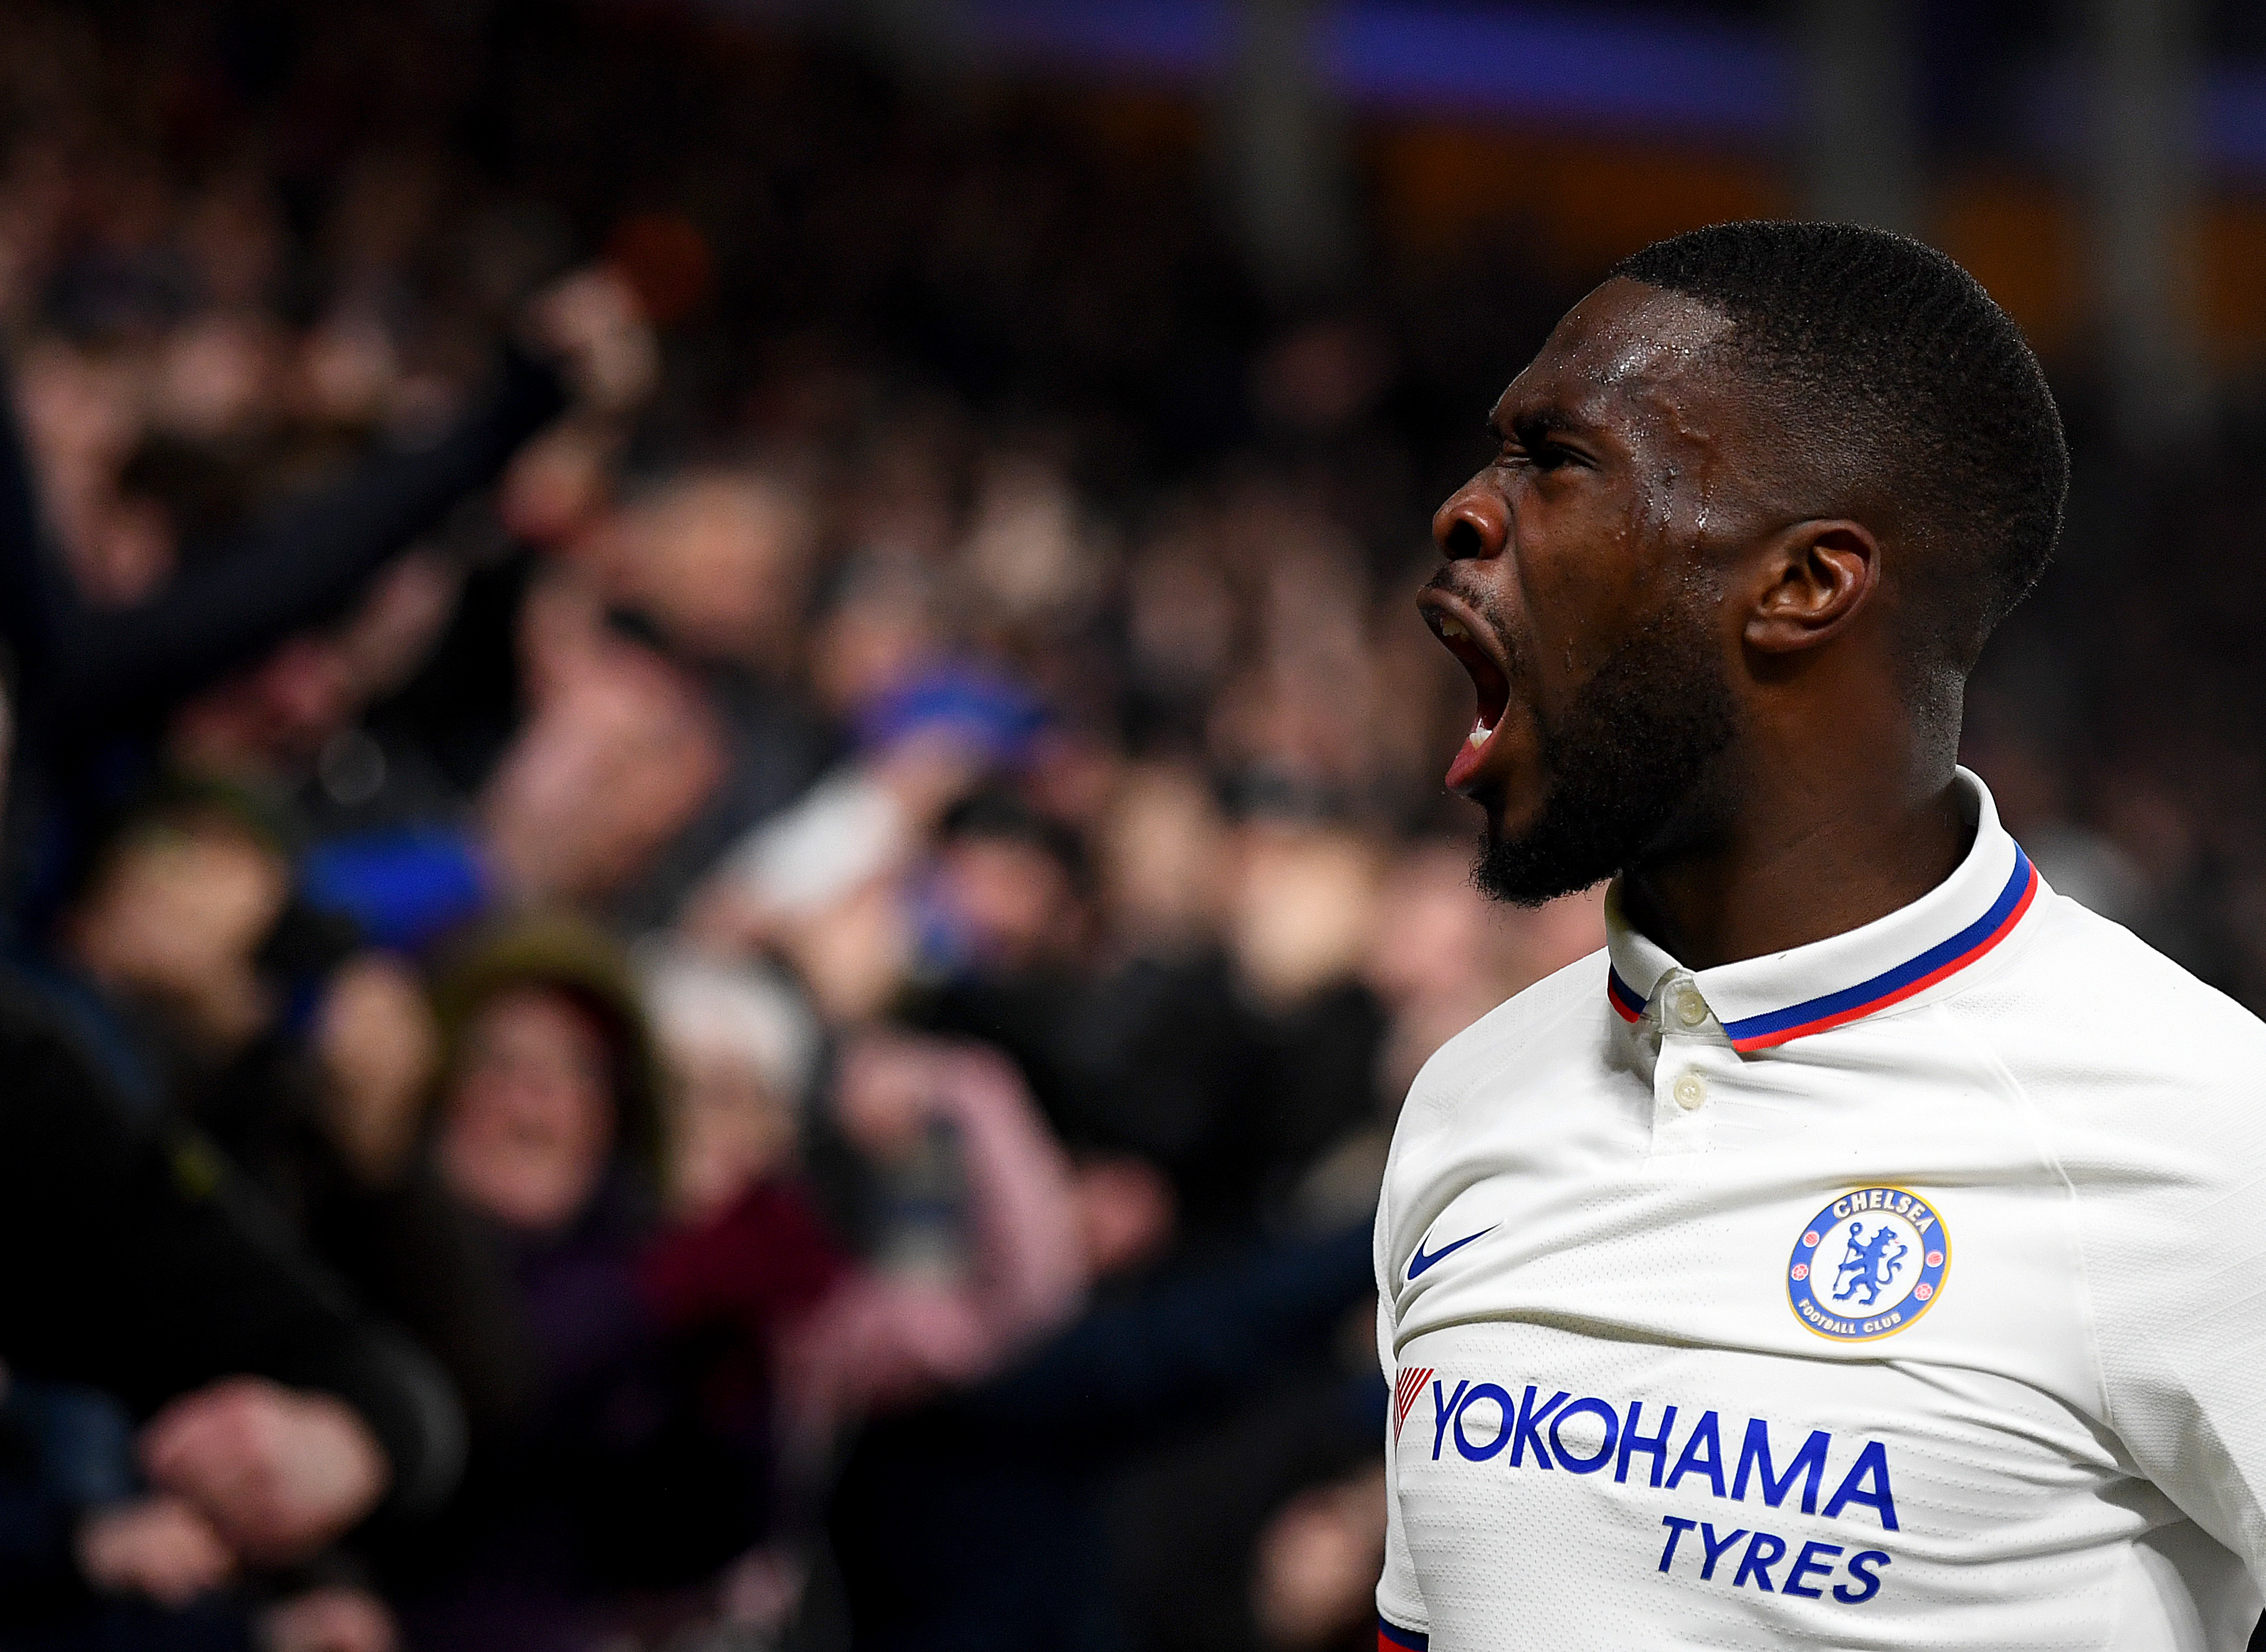 A roaring performance from Tomori (Photo by Clive Mason/Getty Images)